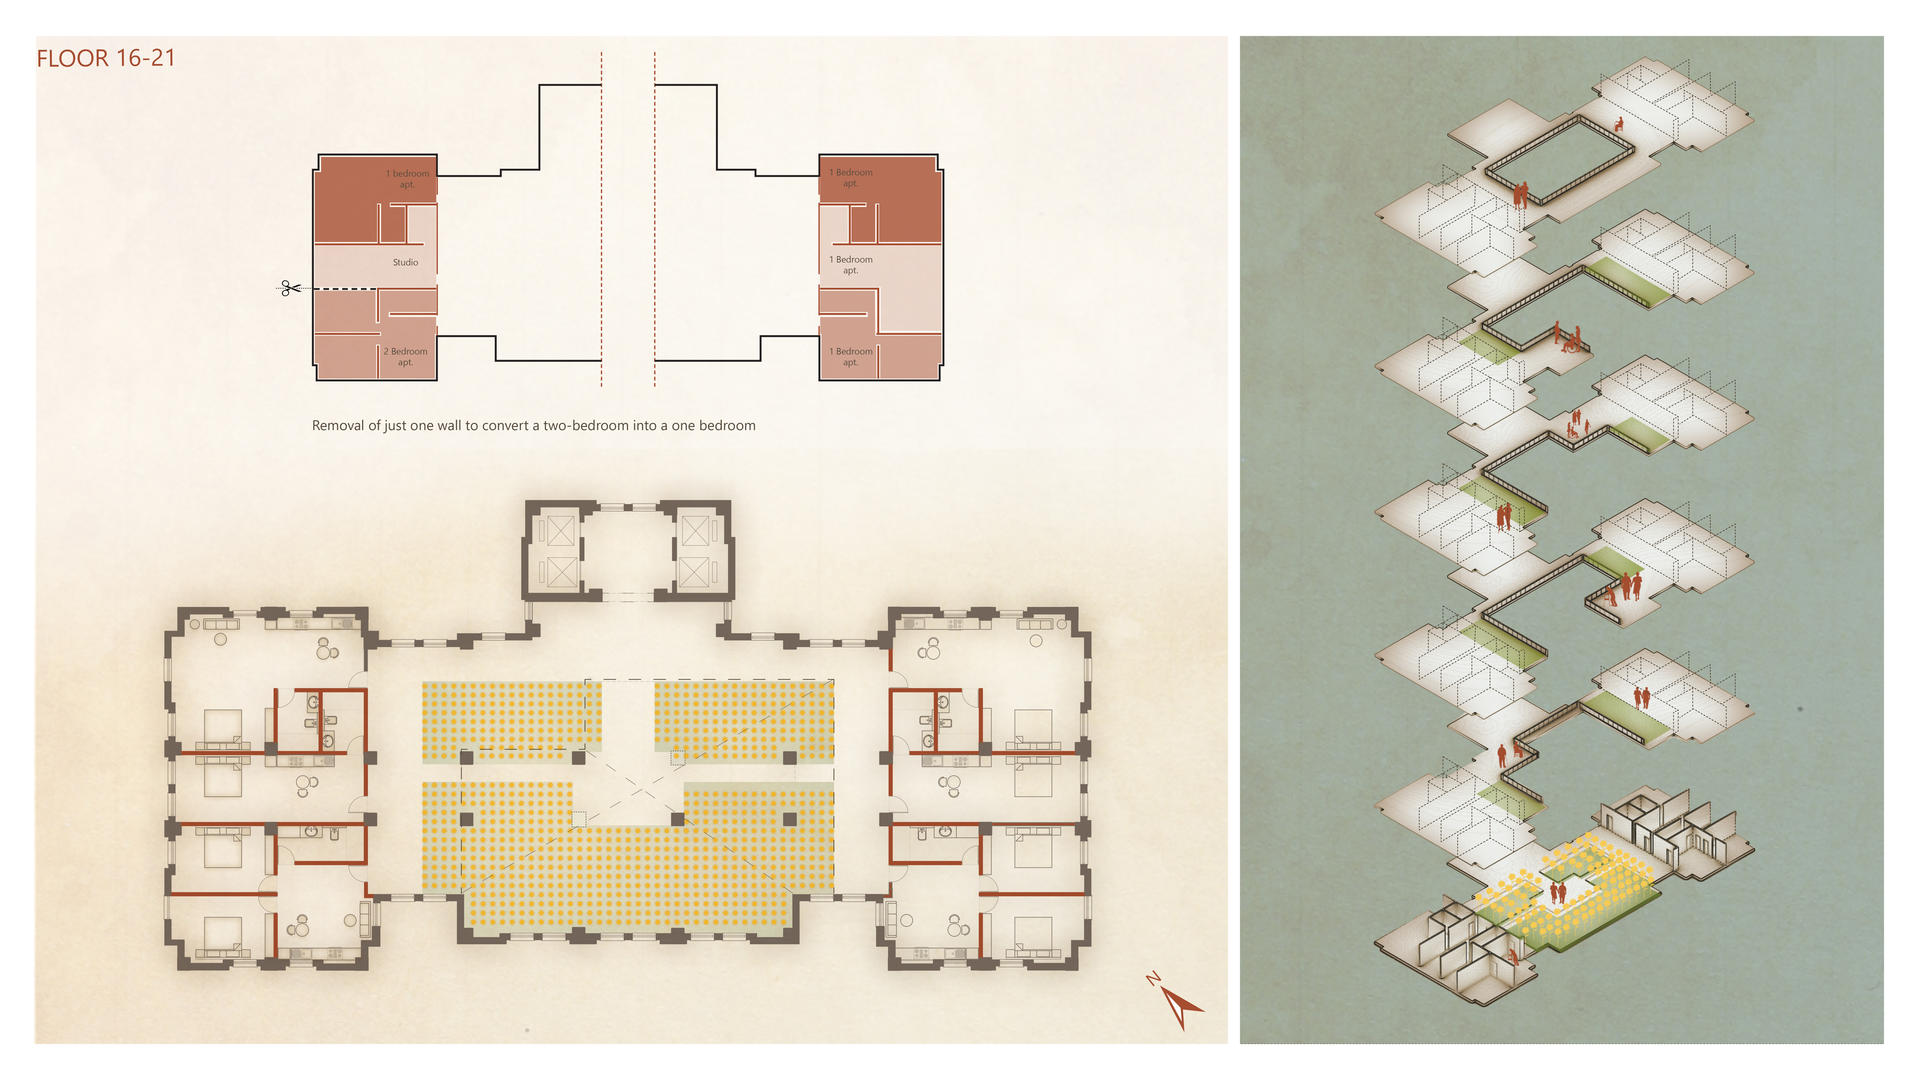 Plan of the unit